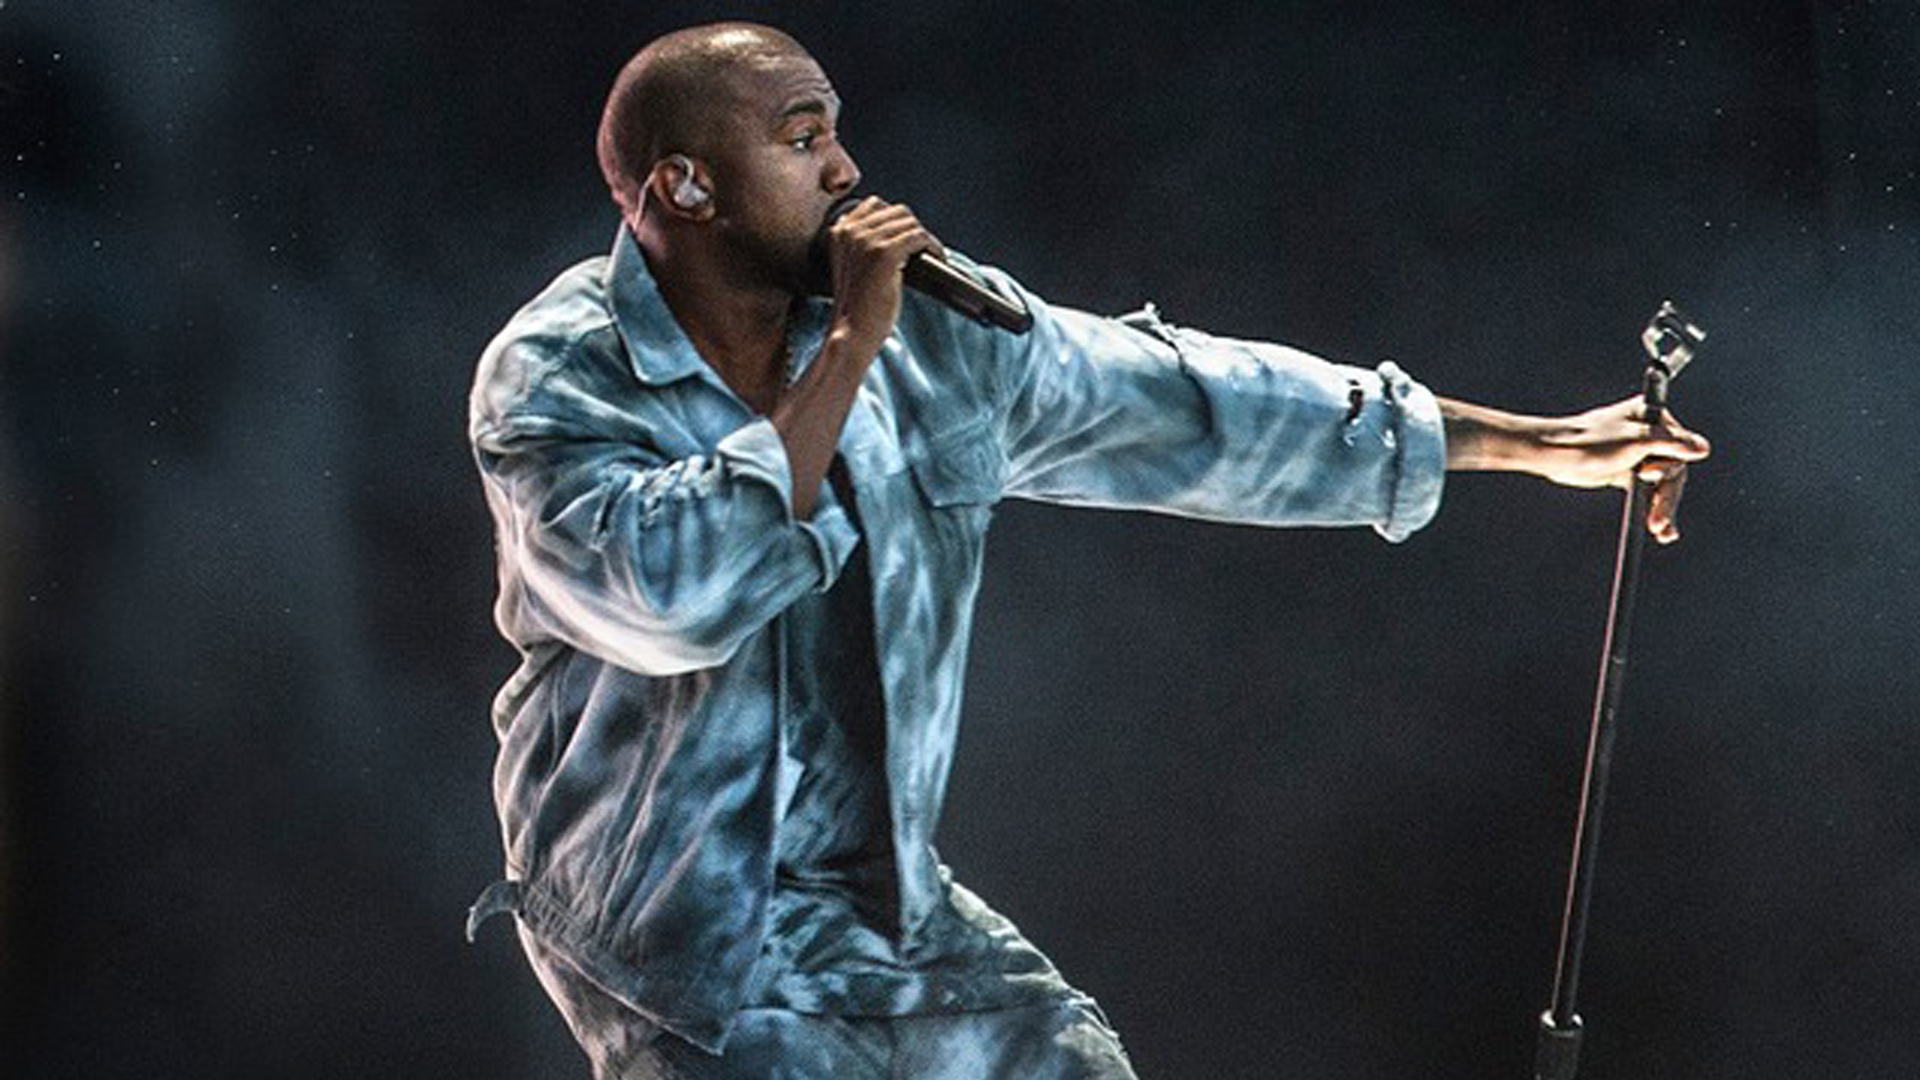 CONFIRMED! KANYE WEST IS GRACING OUR LAND THIS APRIL